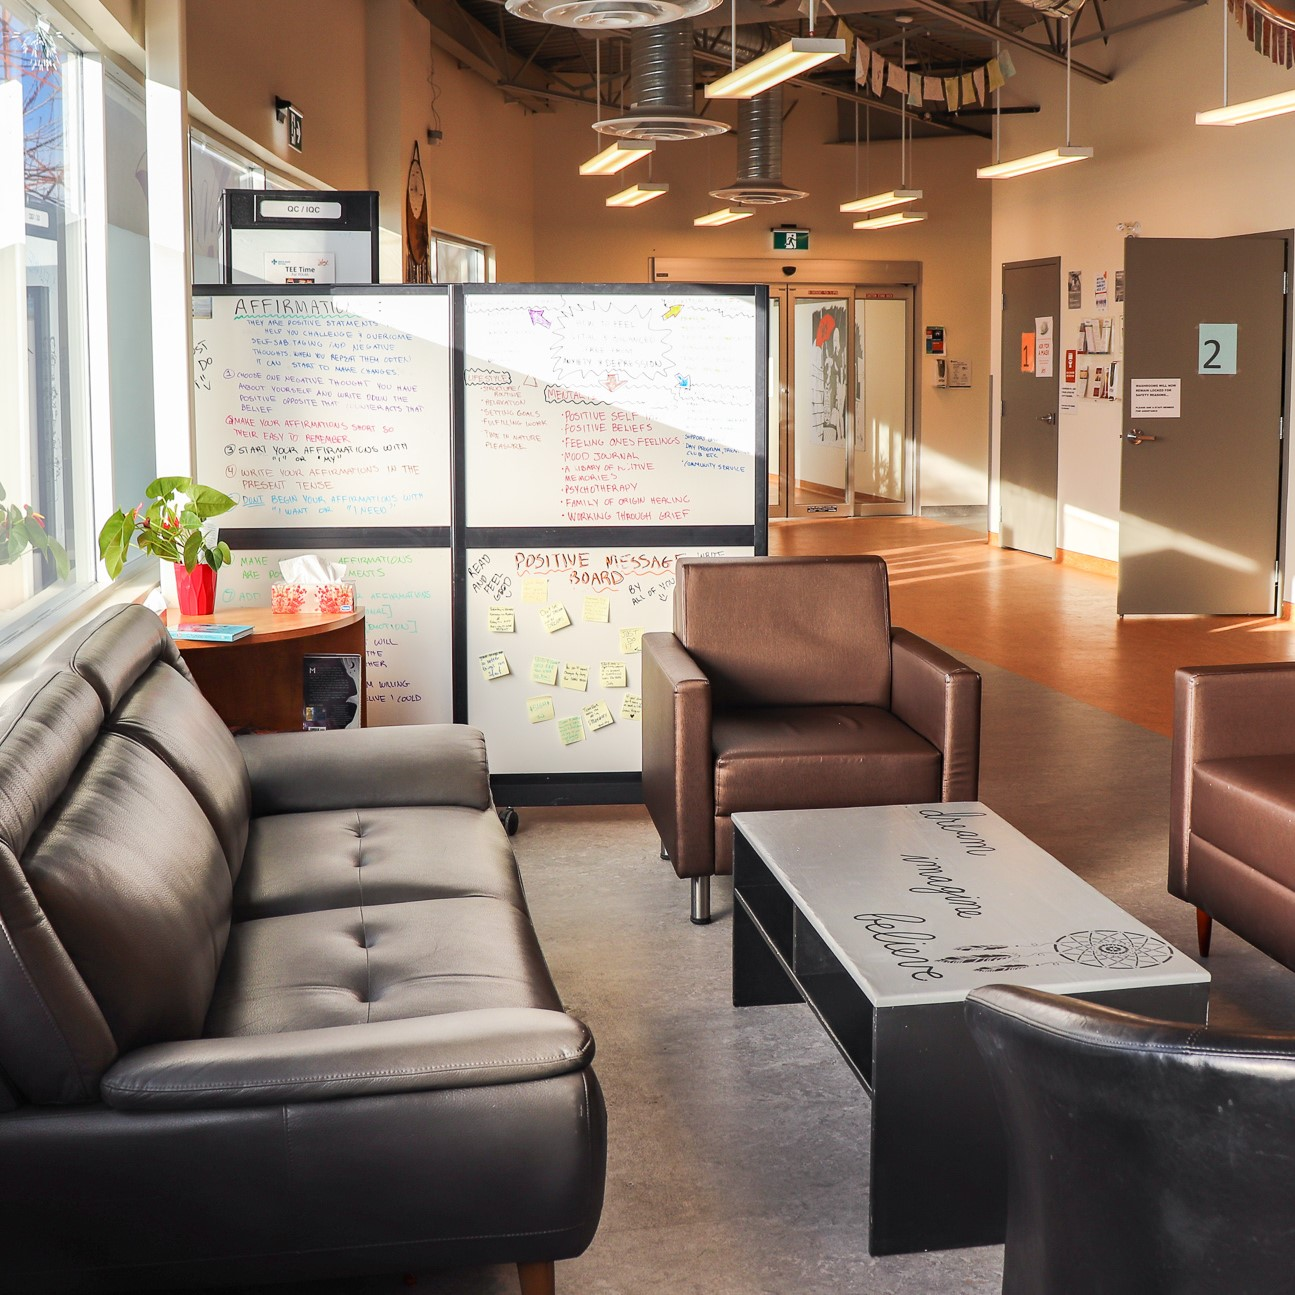 View of couches in The Alex Youth Health Centre